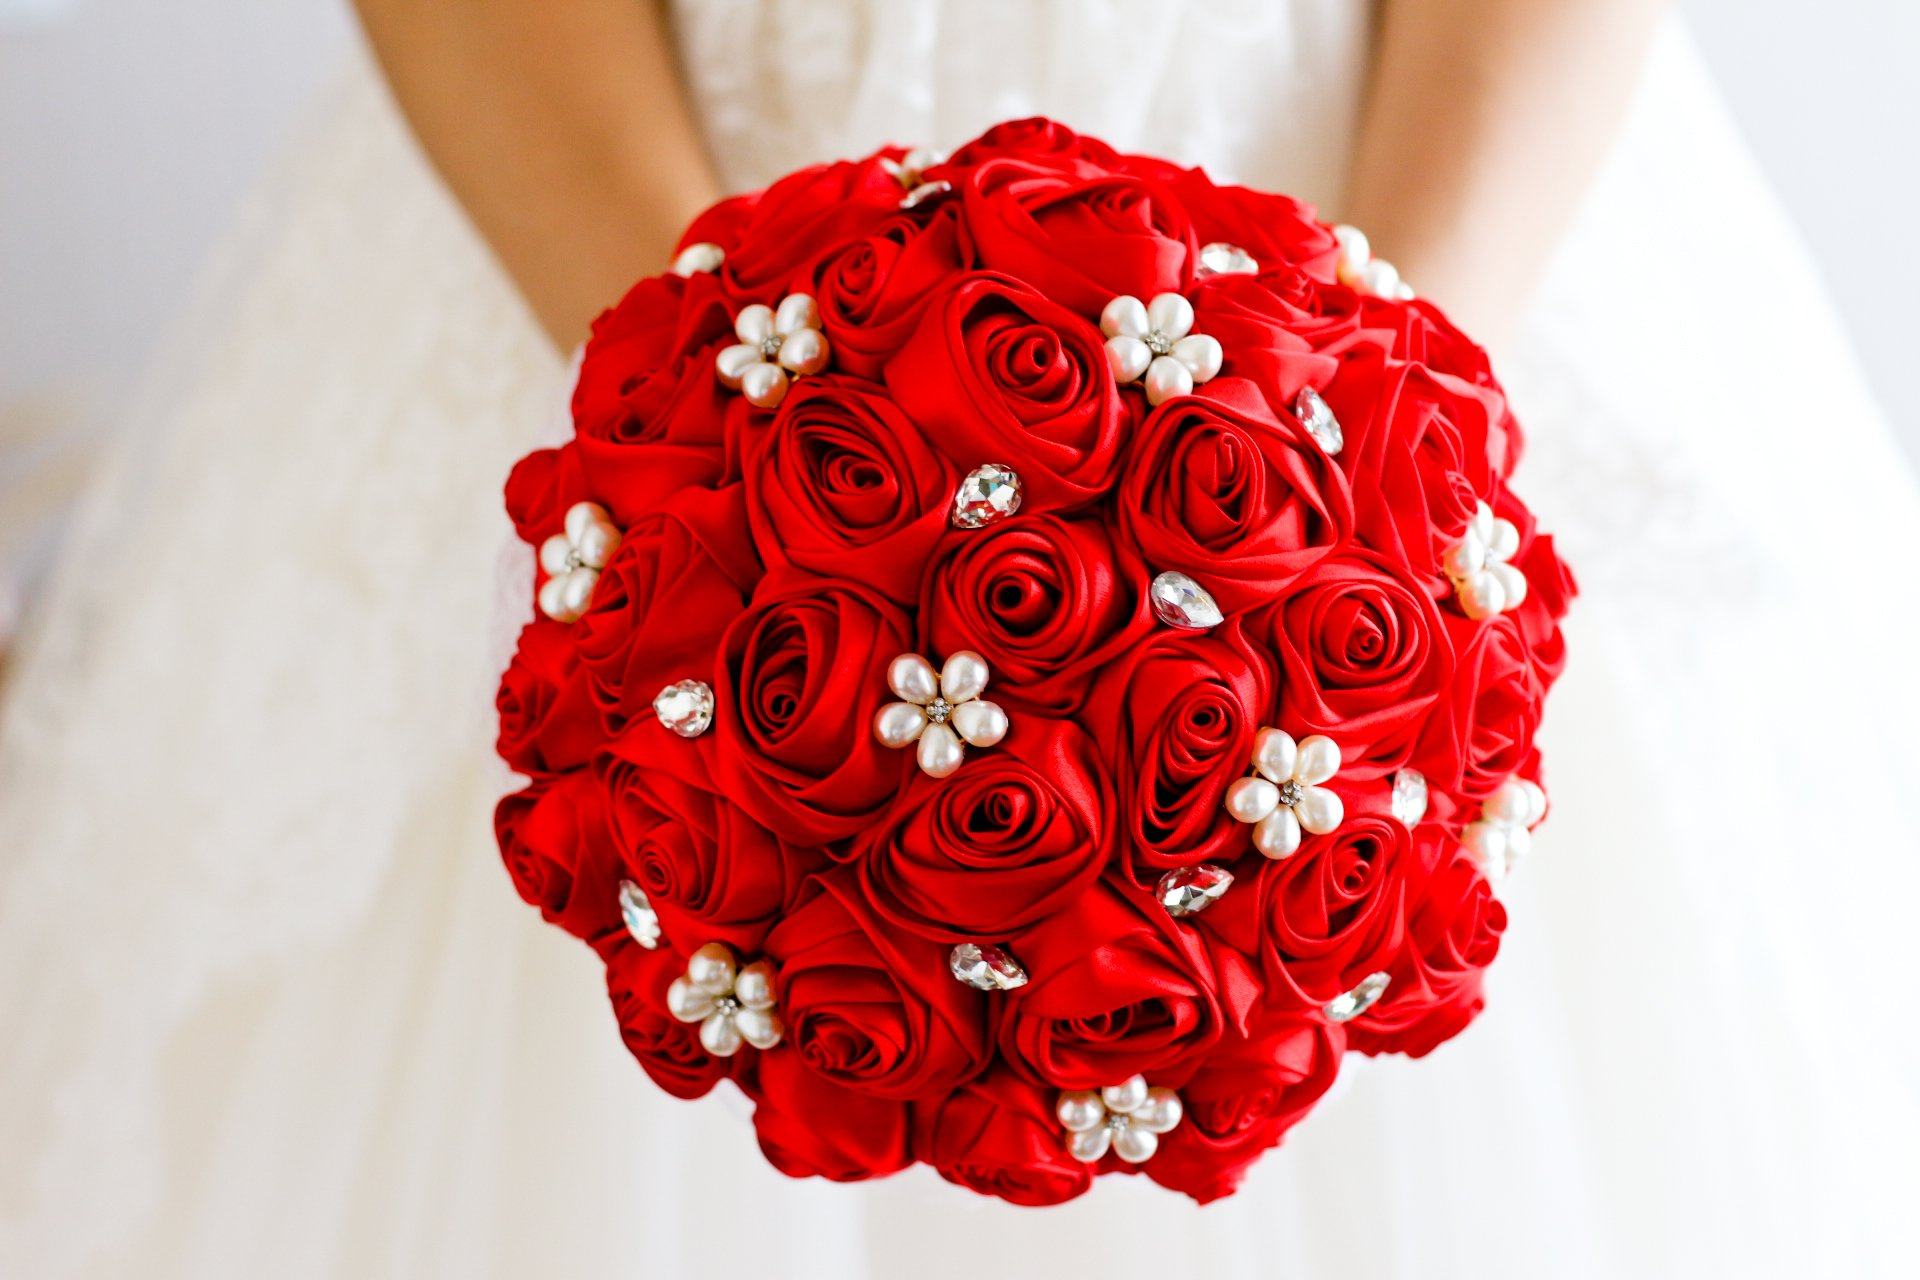 Ivory, blue, coral, T blue,Red Rose flower bridal brooch bouquet Wedding Bride 's Jewelry crystal Pearl Rhinestone Cloth fabric Bouquets (red)